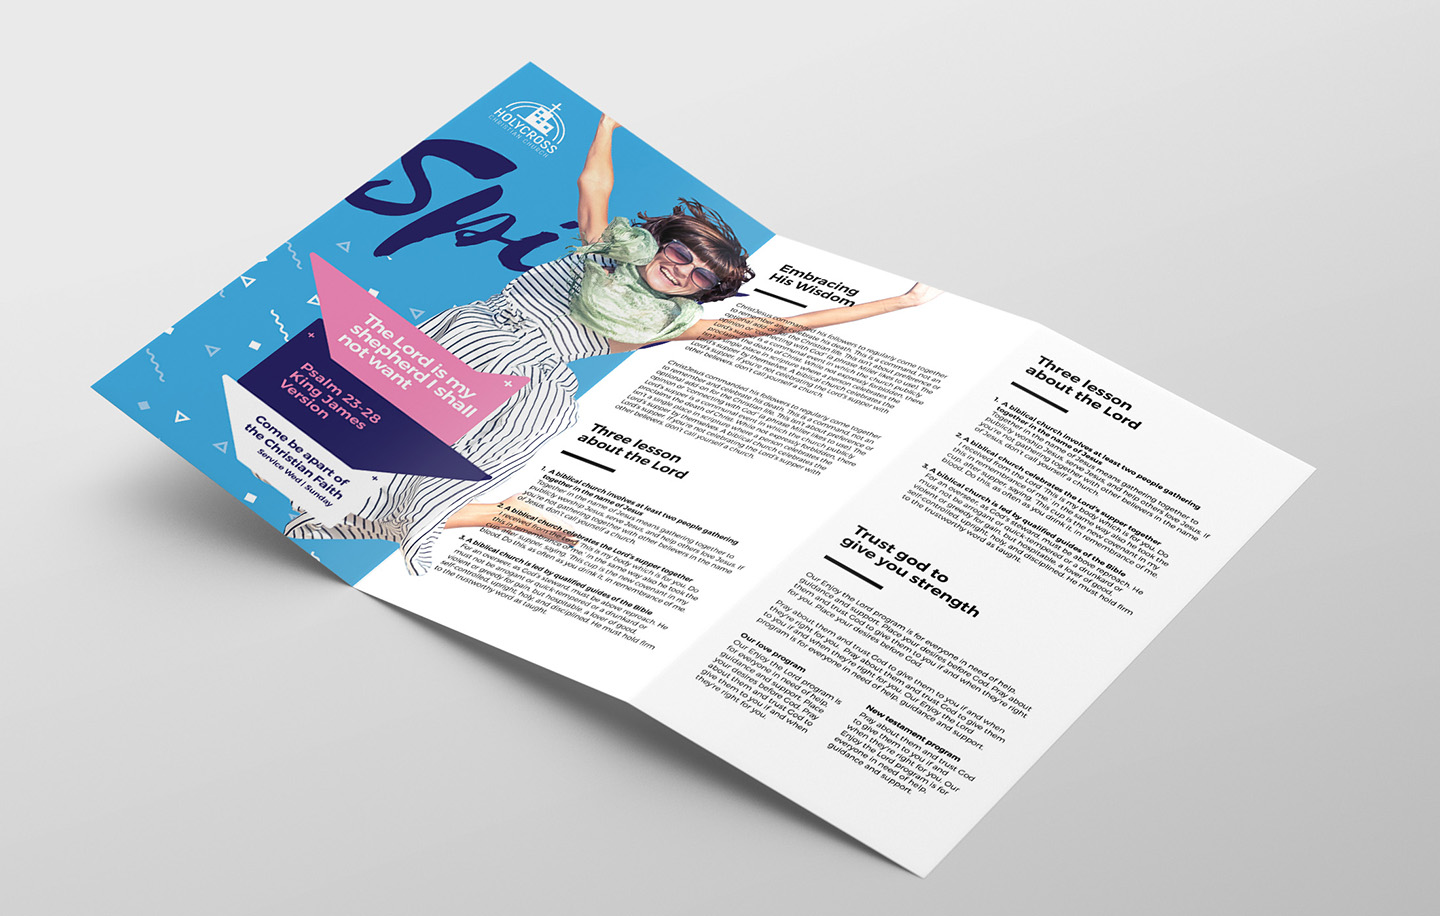 Easter Service Tri-Fold Brochure Template example image 2